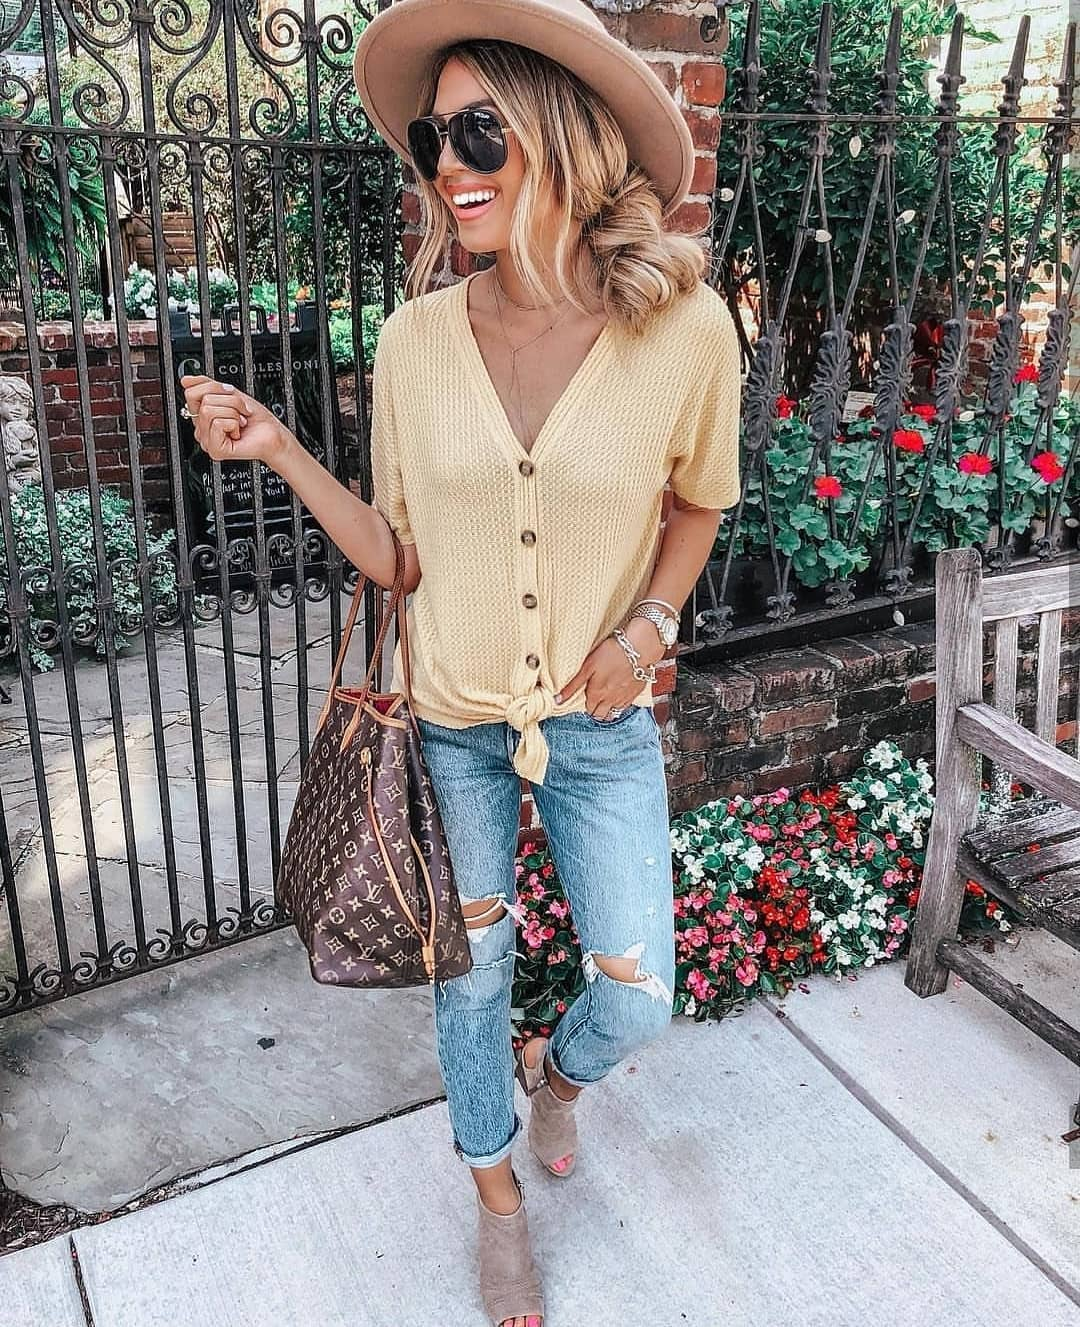 Pastel Yellow V-Neck Knitted Top With Ripped Jeans: Boho Casual Style 2020